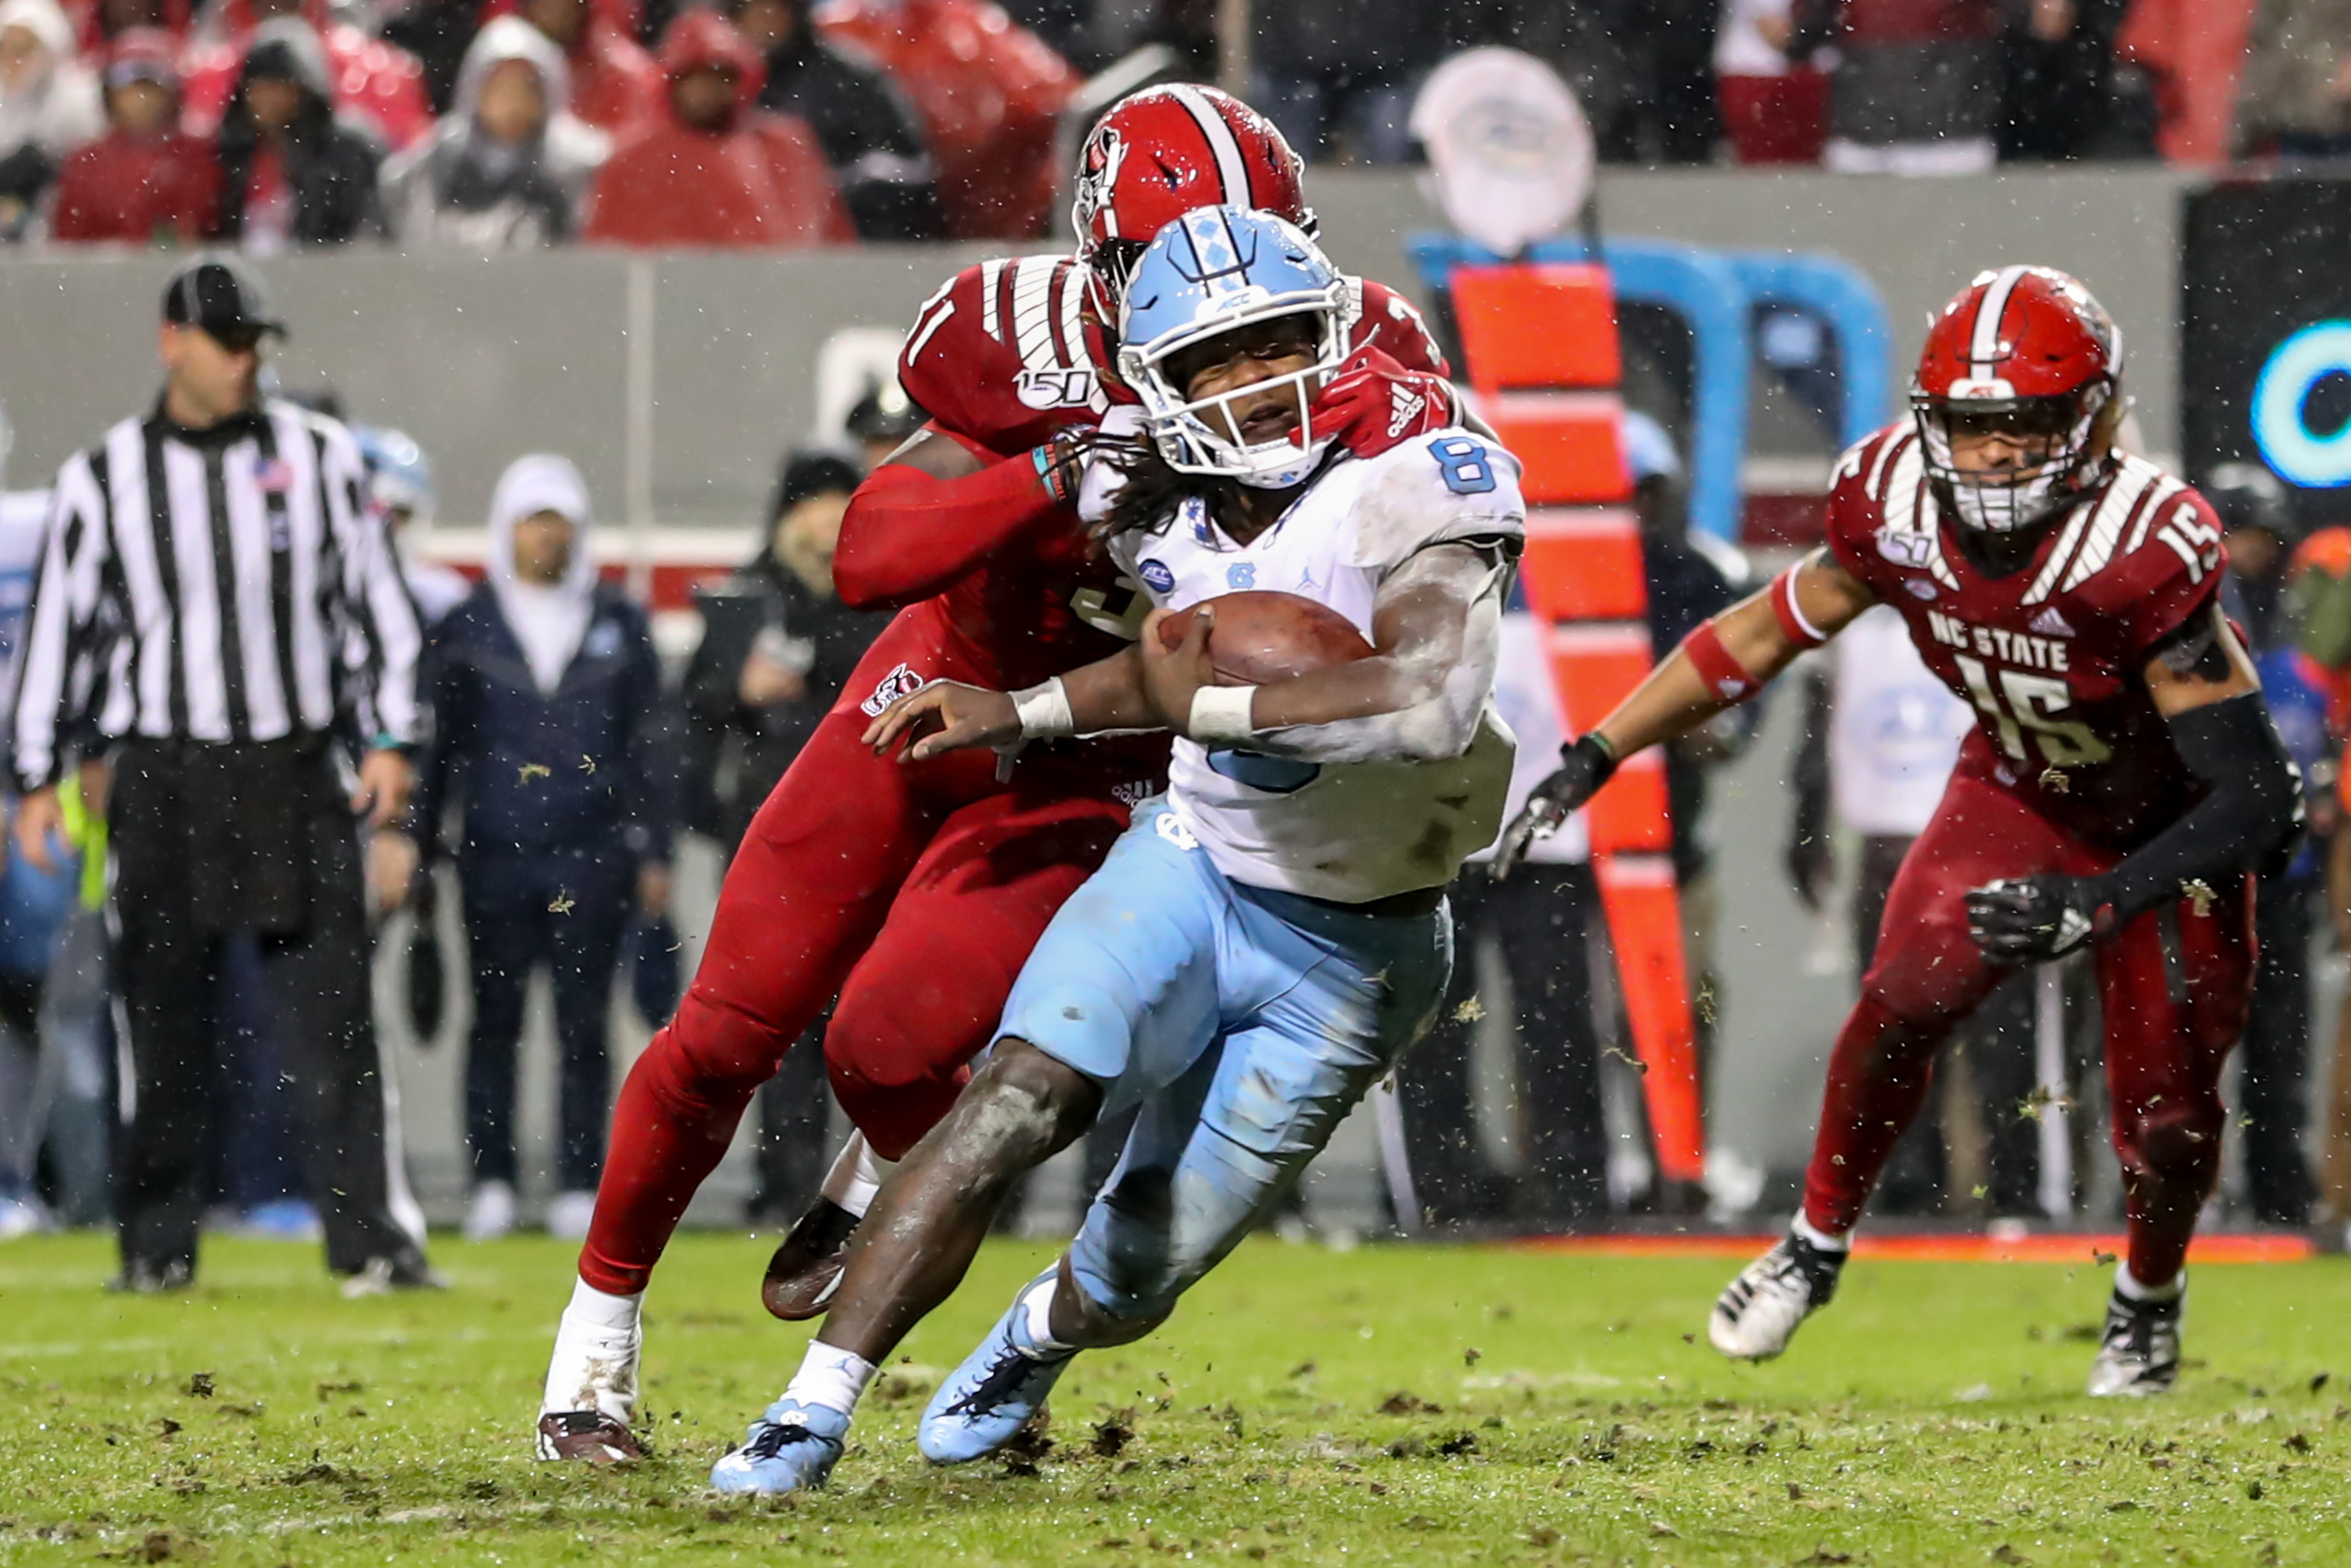 COLLEGE FOOTBALL: NOV 30 North Carolina at NC State